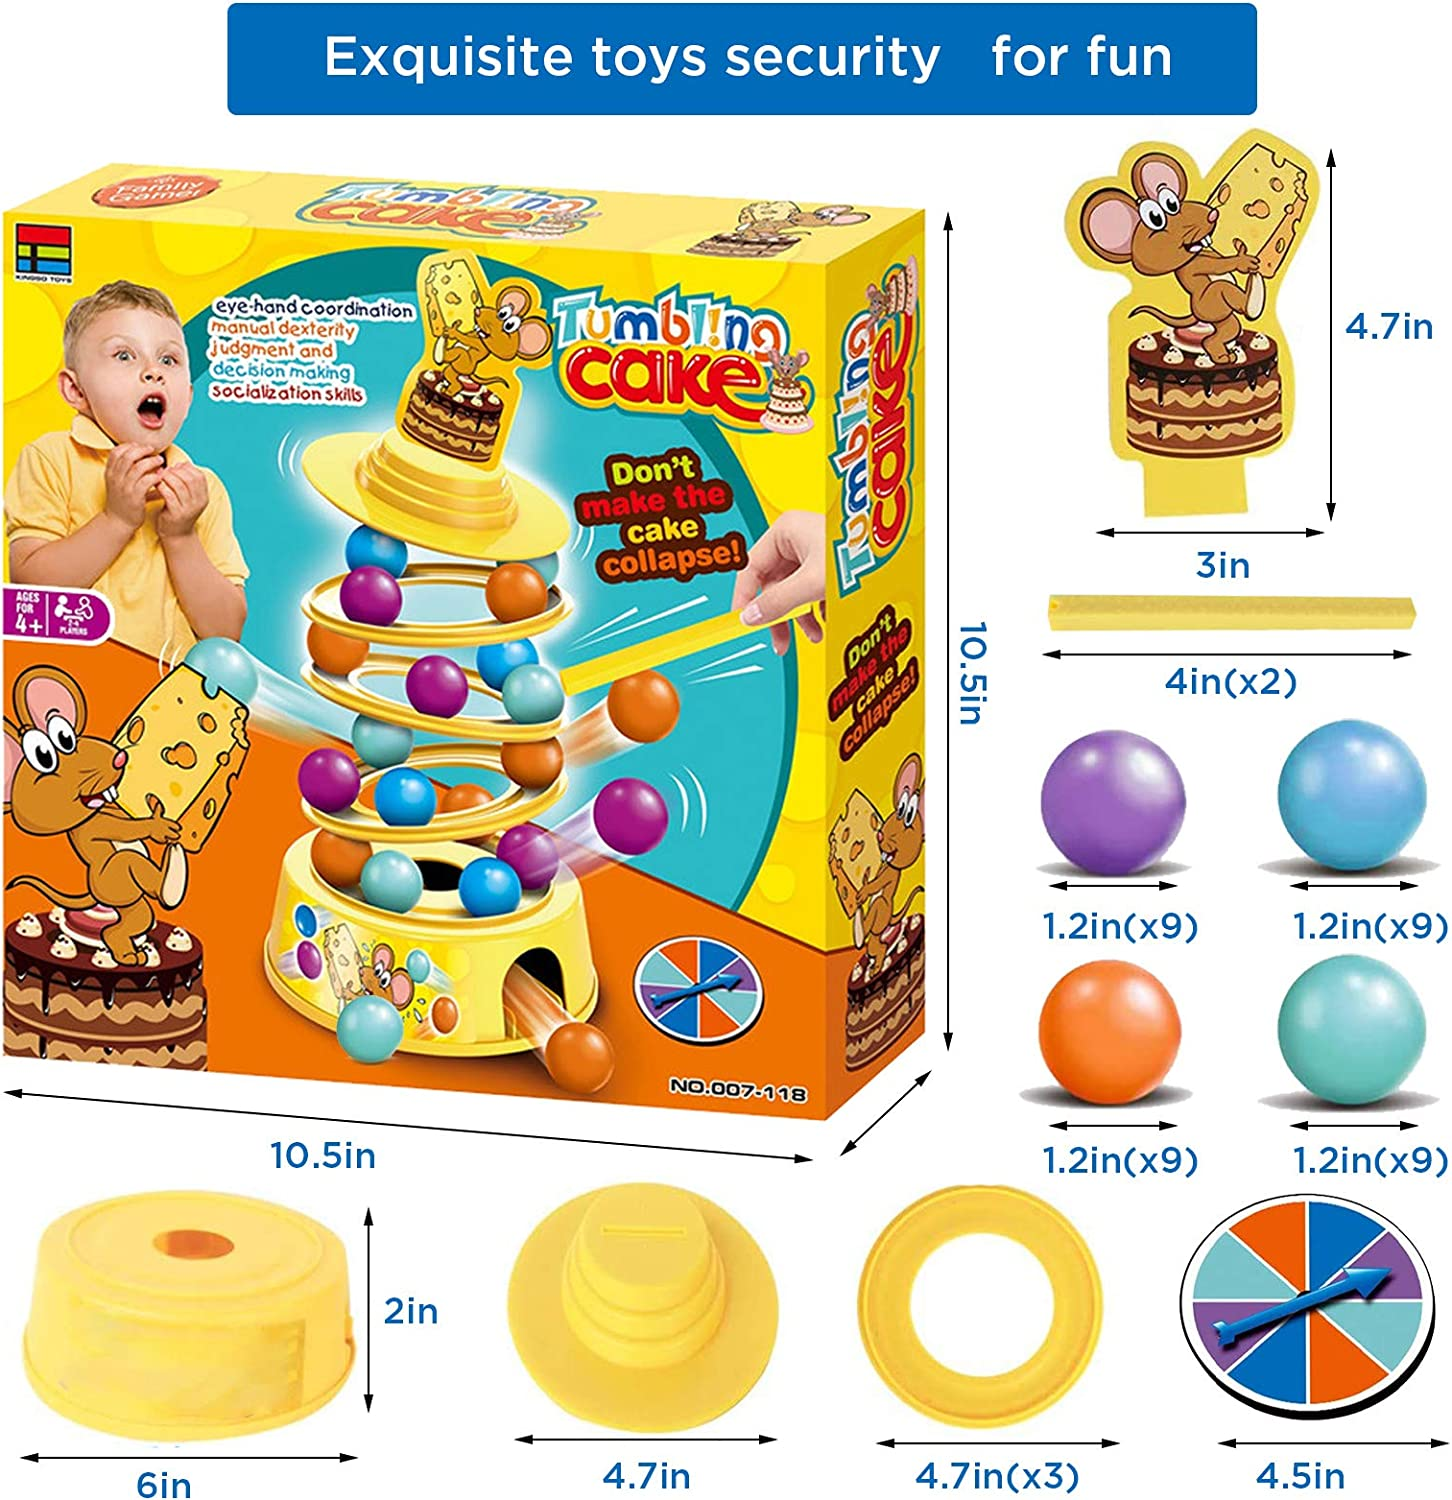 48Pcs Tower Stacking Fun Board Game for Kids 4-6 Adults Balance Suspend Family Games for Party Montessori Tumbling Educational Fine Motor Skills Toys Gifts for 4 5 6 7 8 9 Years Old Boys /& Girls